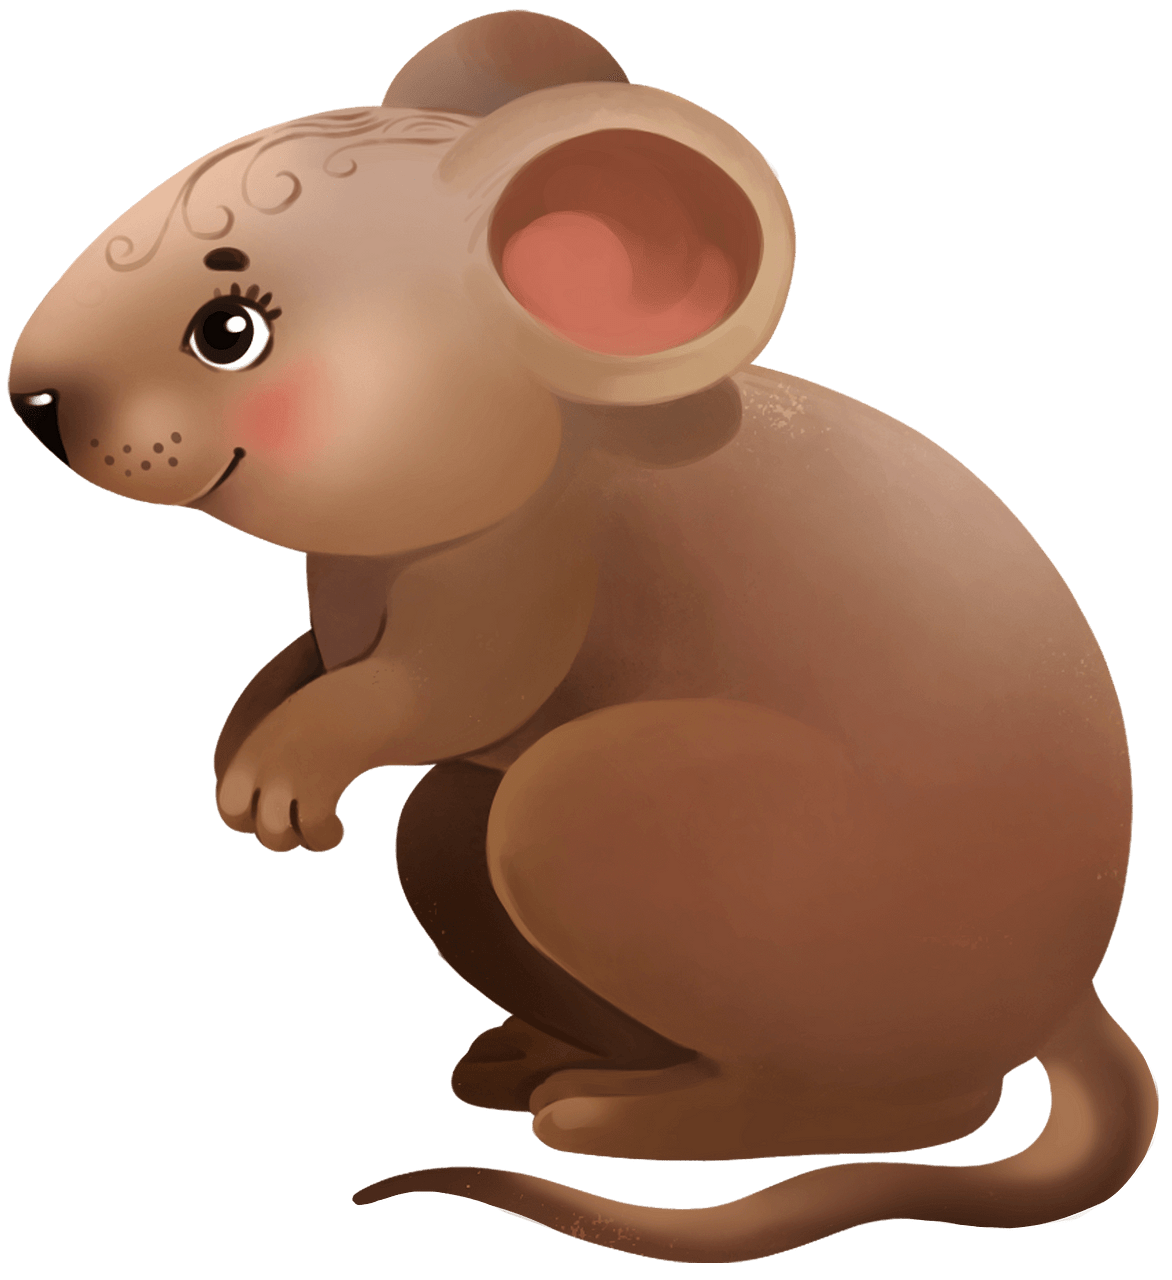 Mouse clipart. Free download..